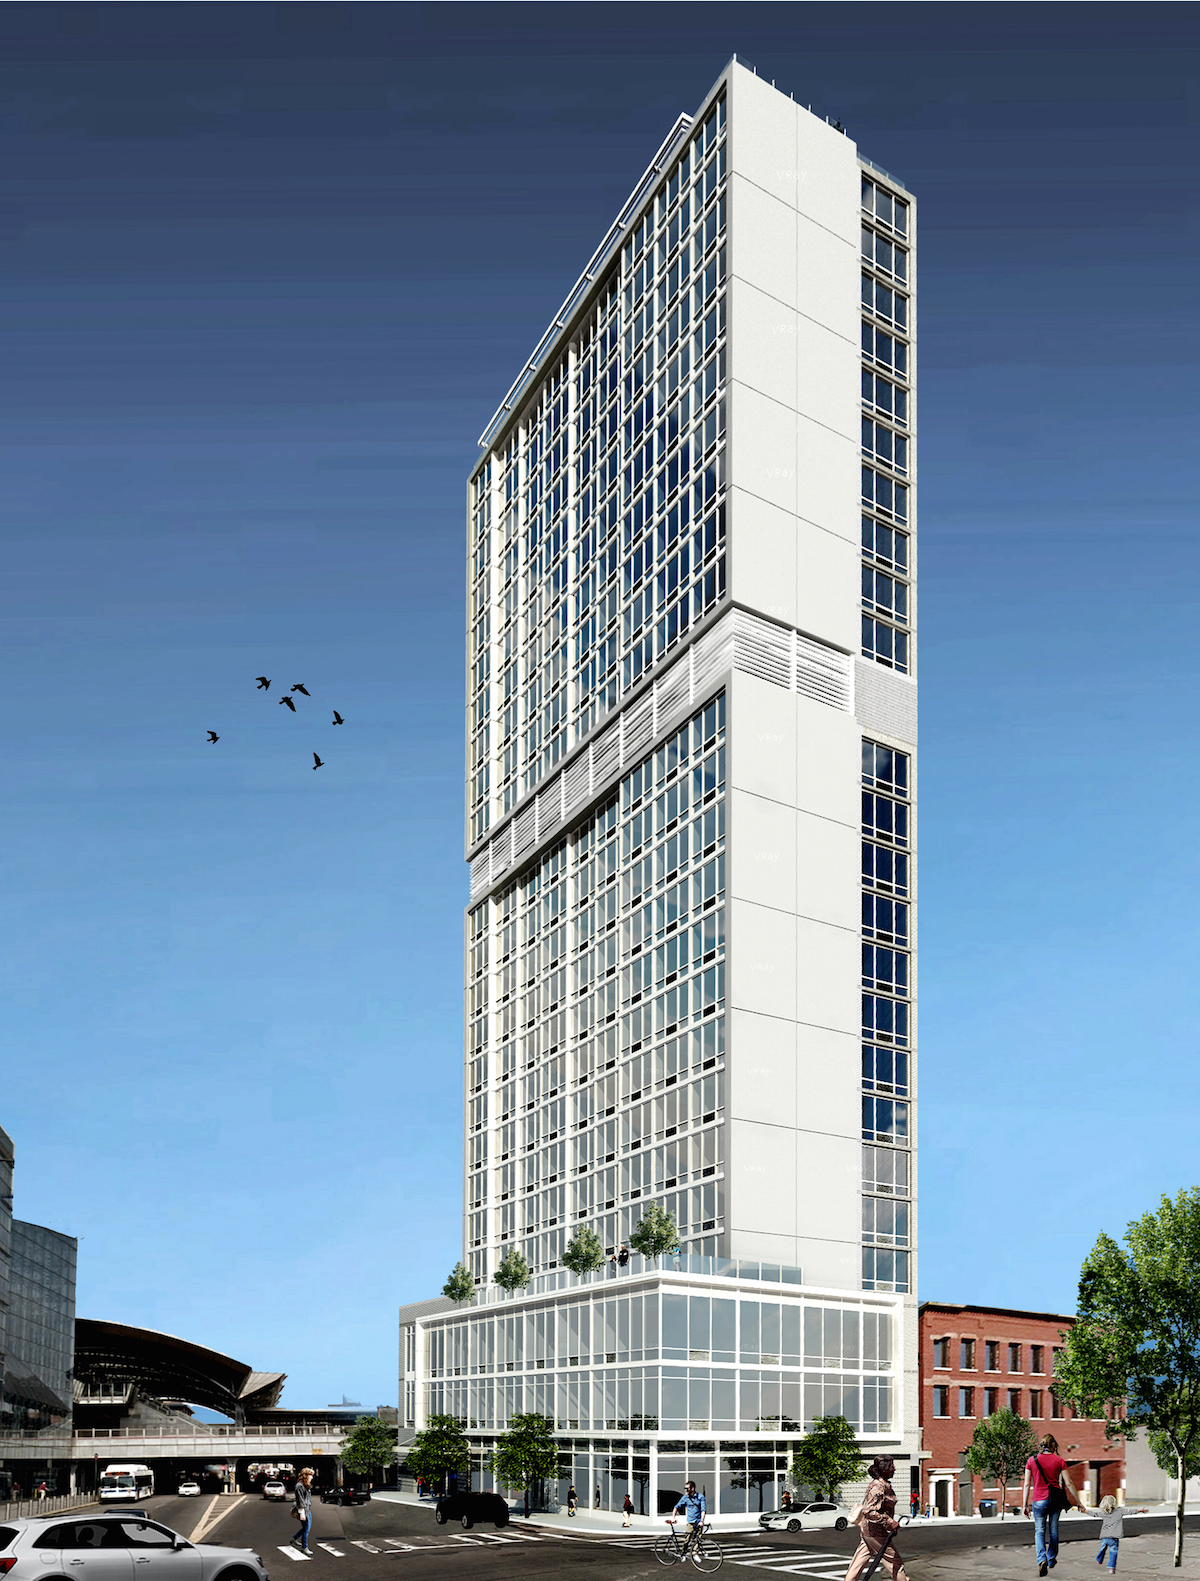 Hilton Garden Inn at 93-43 Sutphin Boulevard, rendering by GF55 Partners